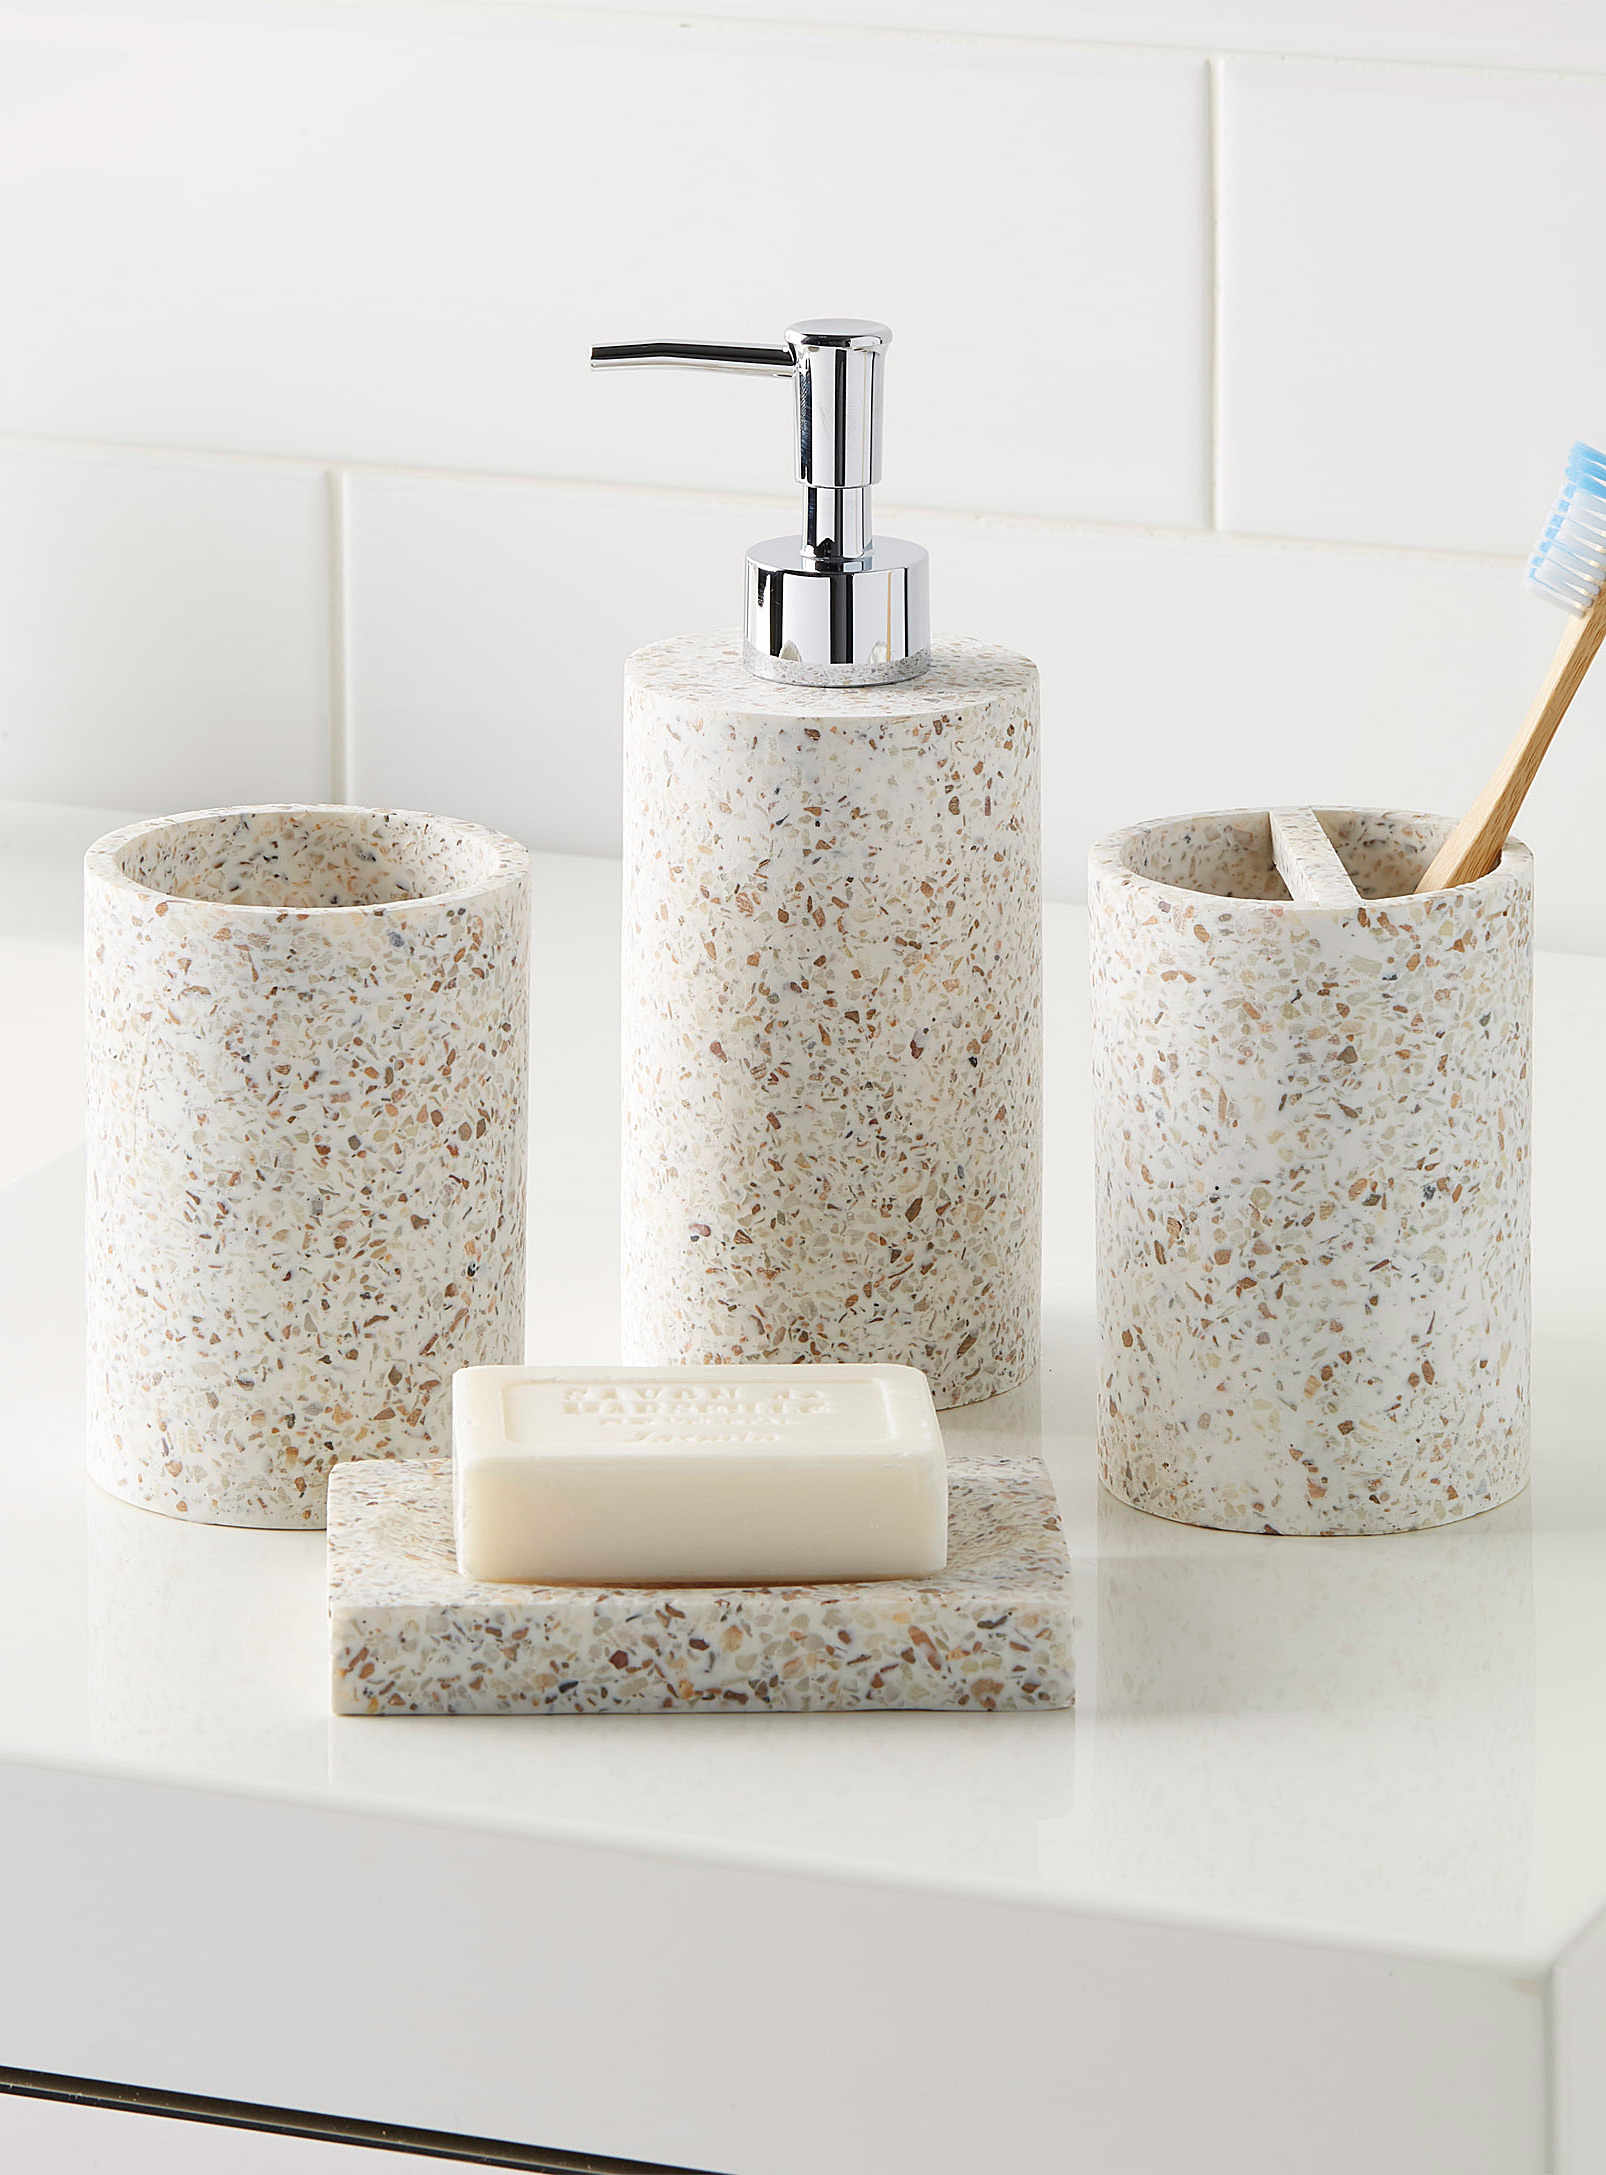 Modern Bathroom Soap and Toothbrush Storage Containers